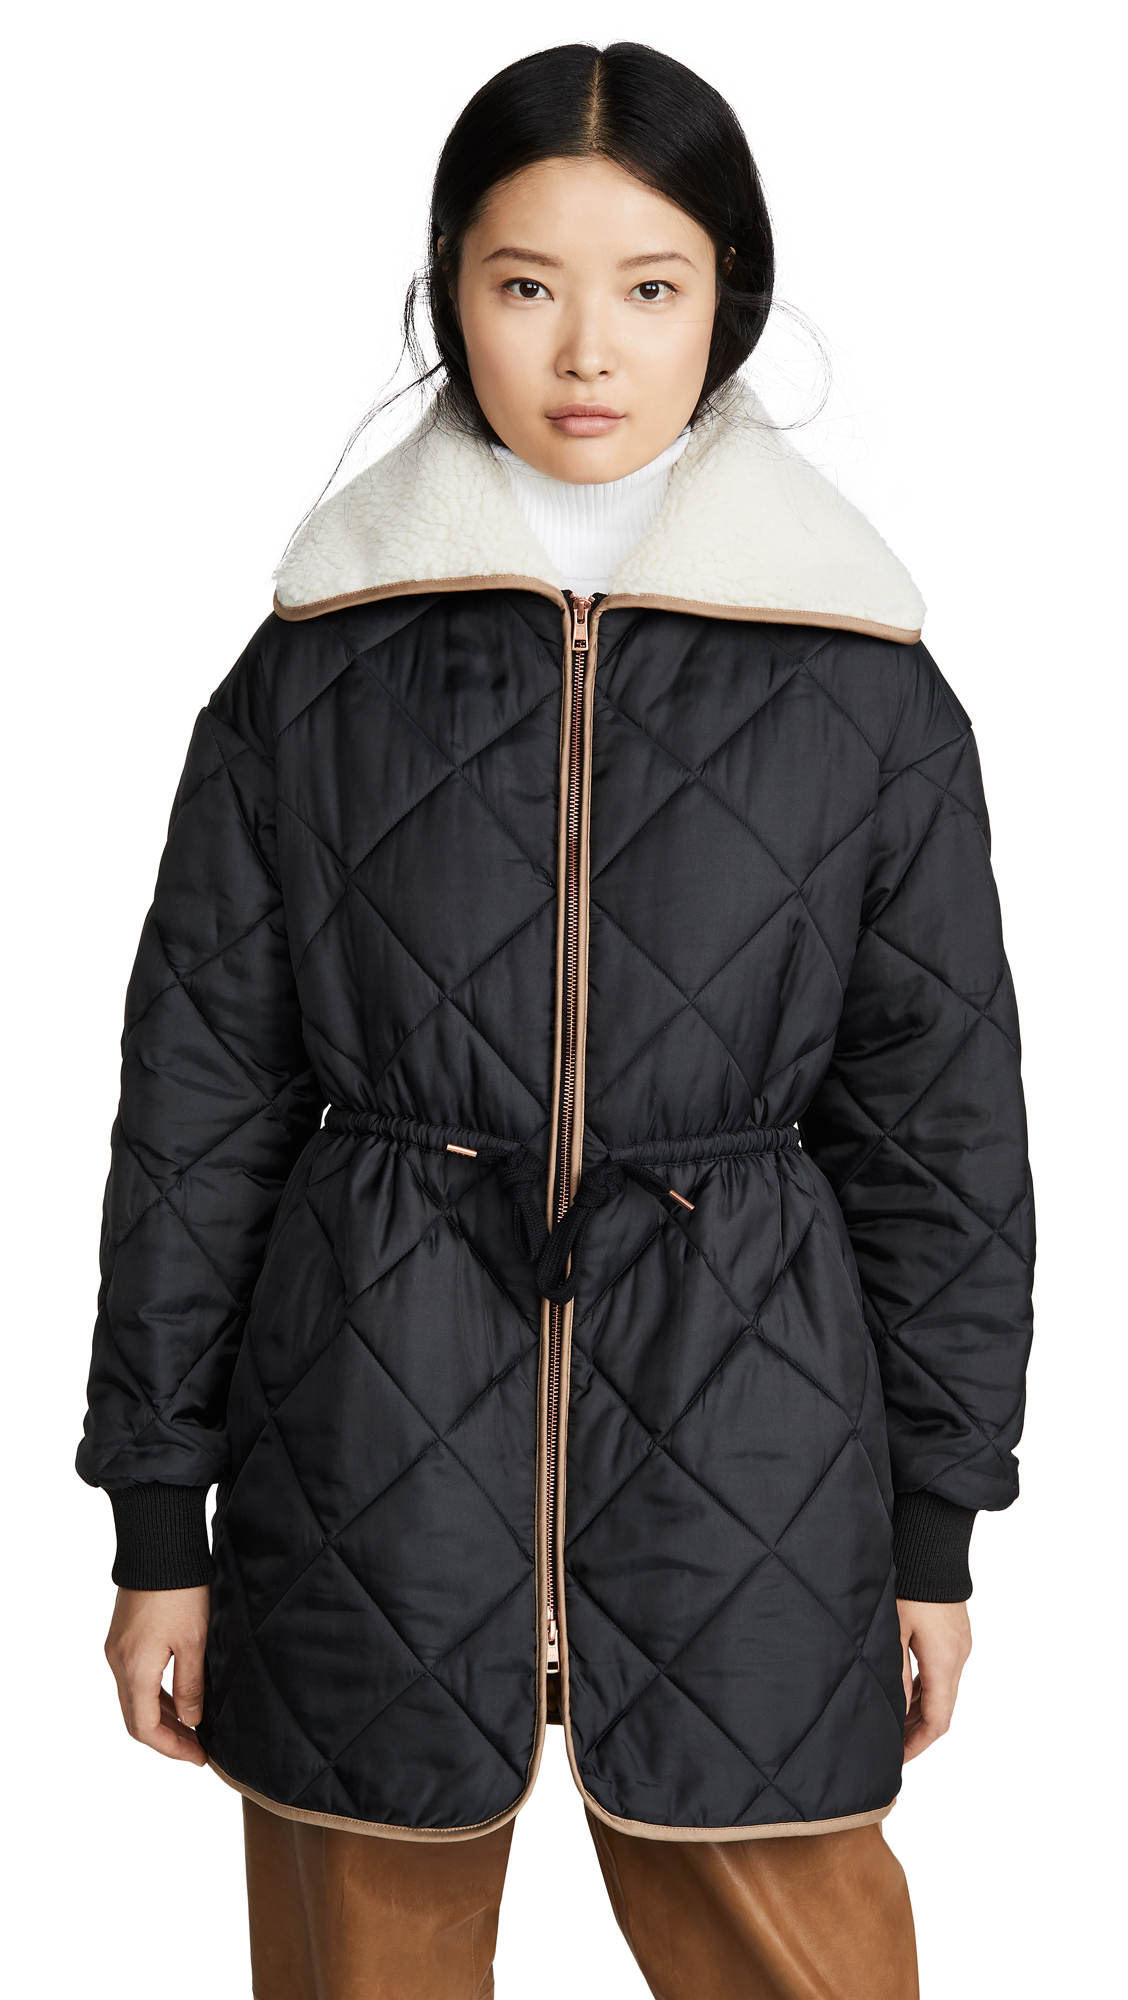 Buy See by Chloe Quilted Parka online beautiful See by Chloe Jackets, Coats, Down Jackets